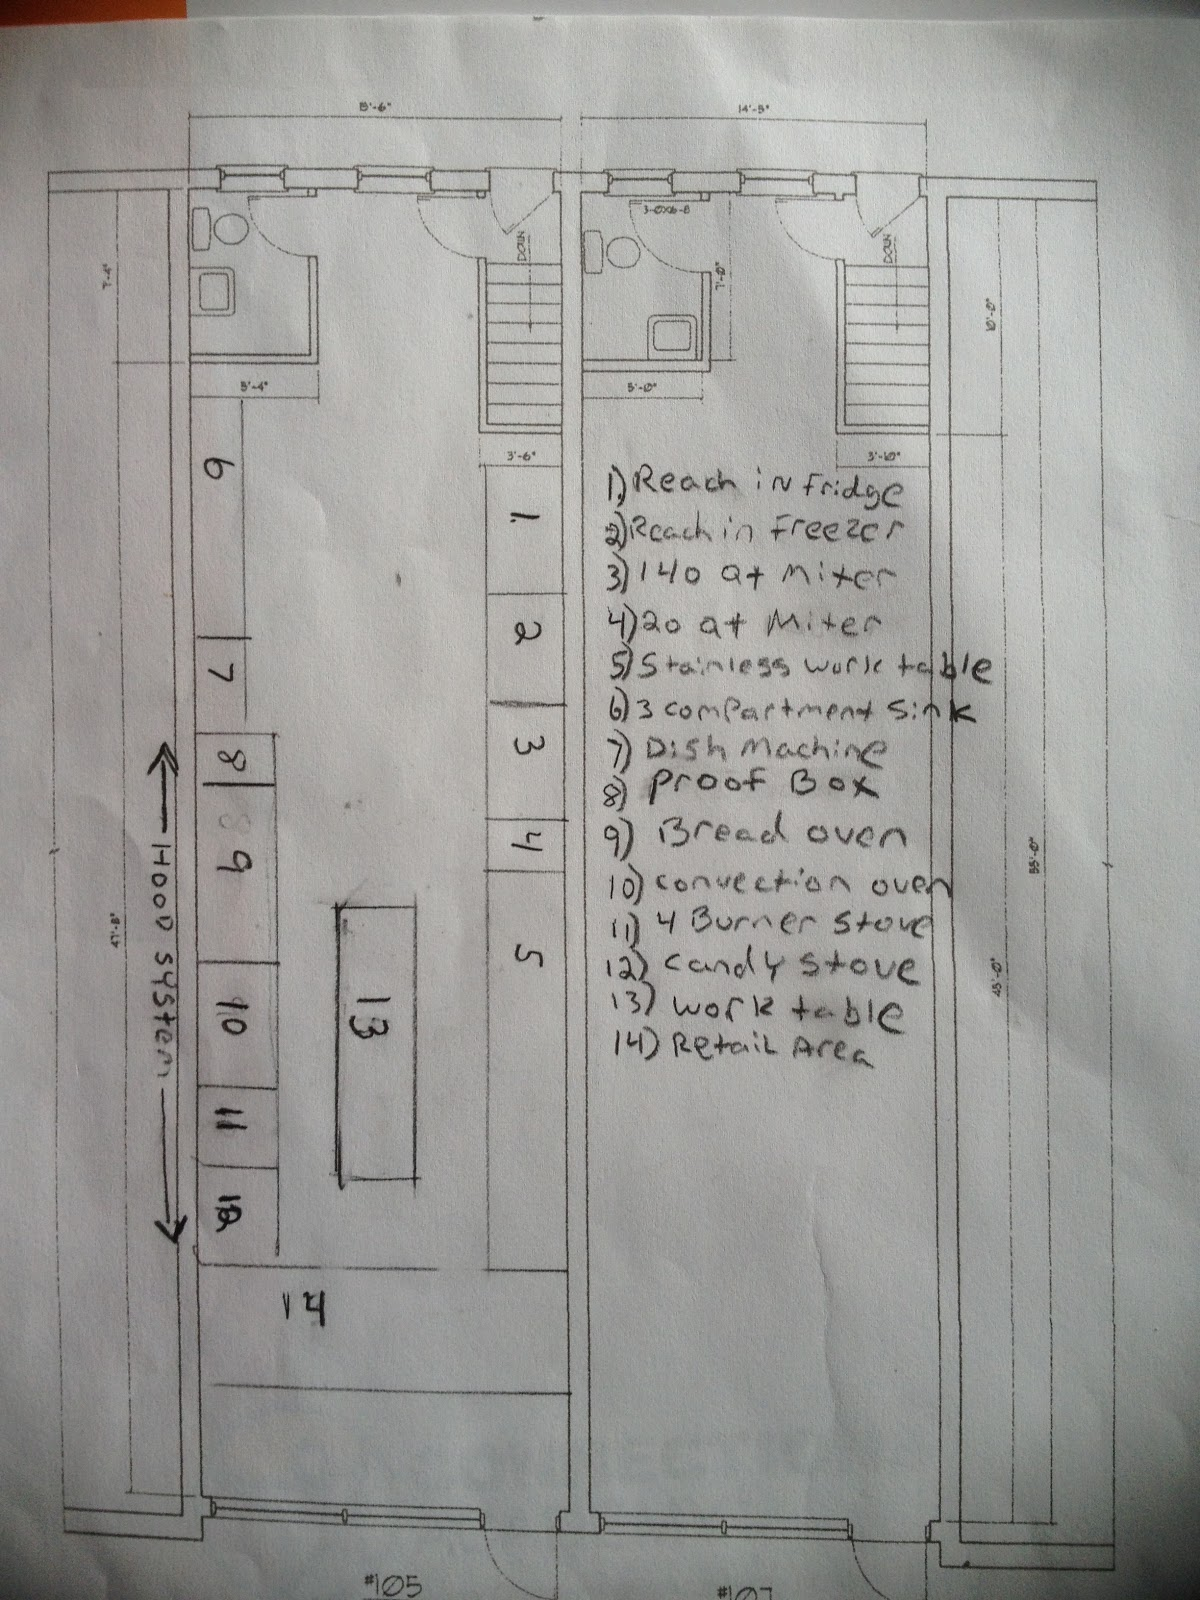 To Build A Bakery February 2013 Three Phase Wiring Diagram Hobart Fryer Installation Fire Suppression Etc He Then Takes All Of The Specs And Puts Them Into Computer Program Called Cad Voila Out Comes Floor Plan